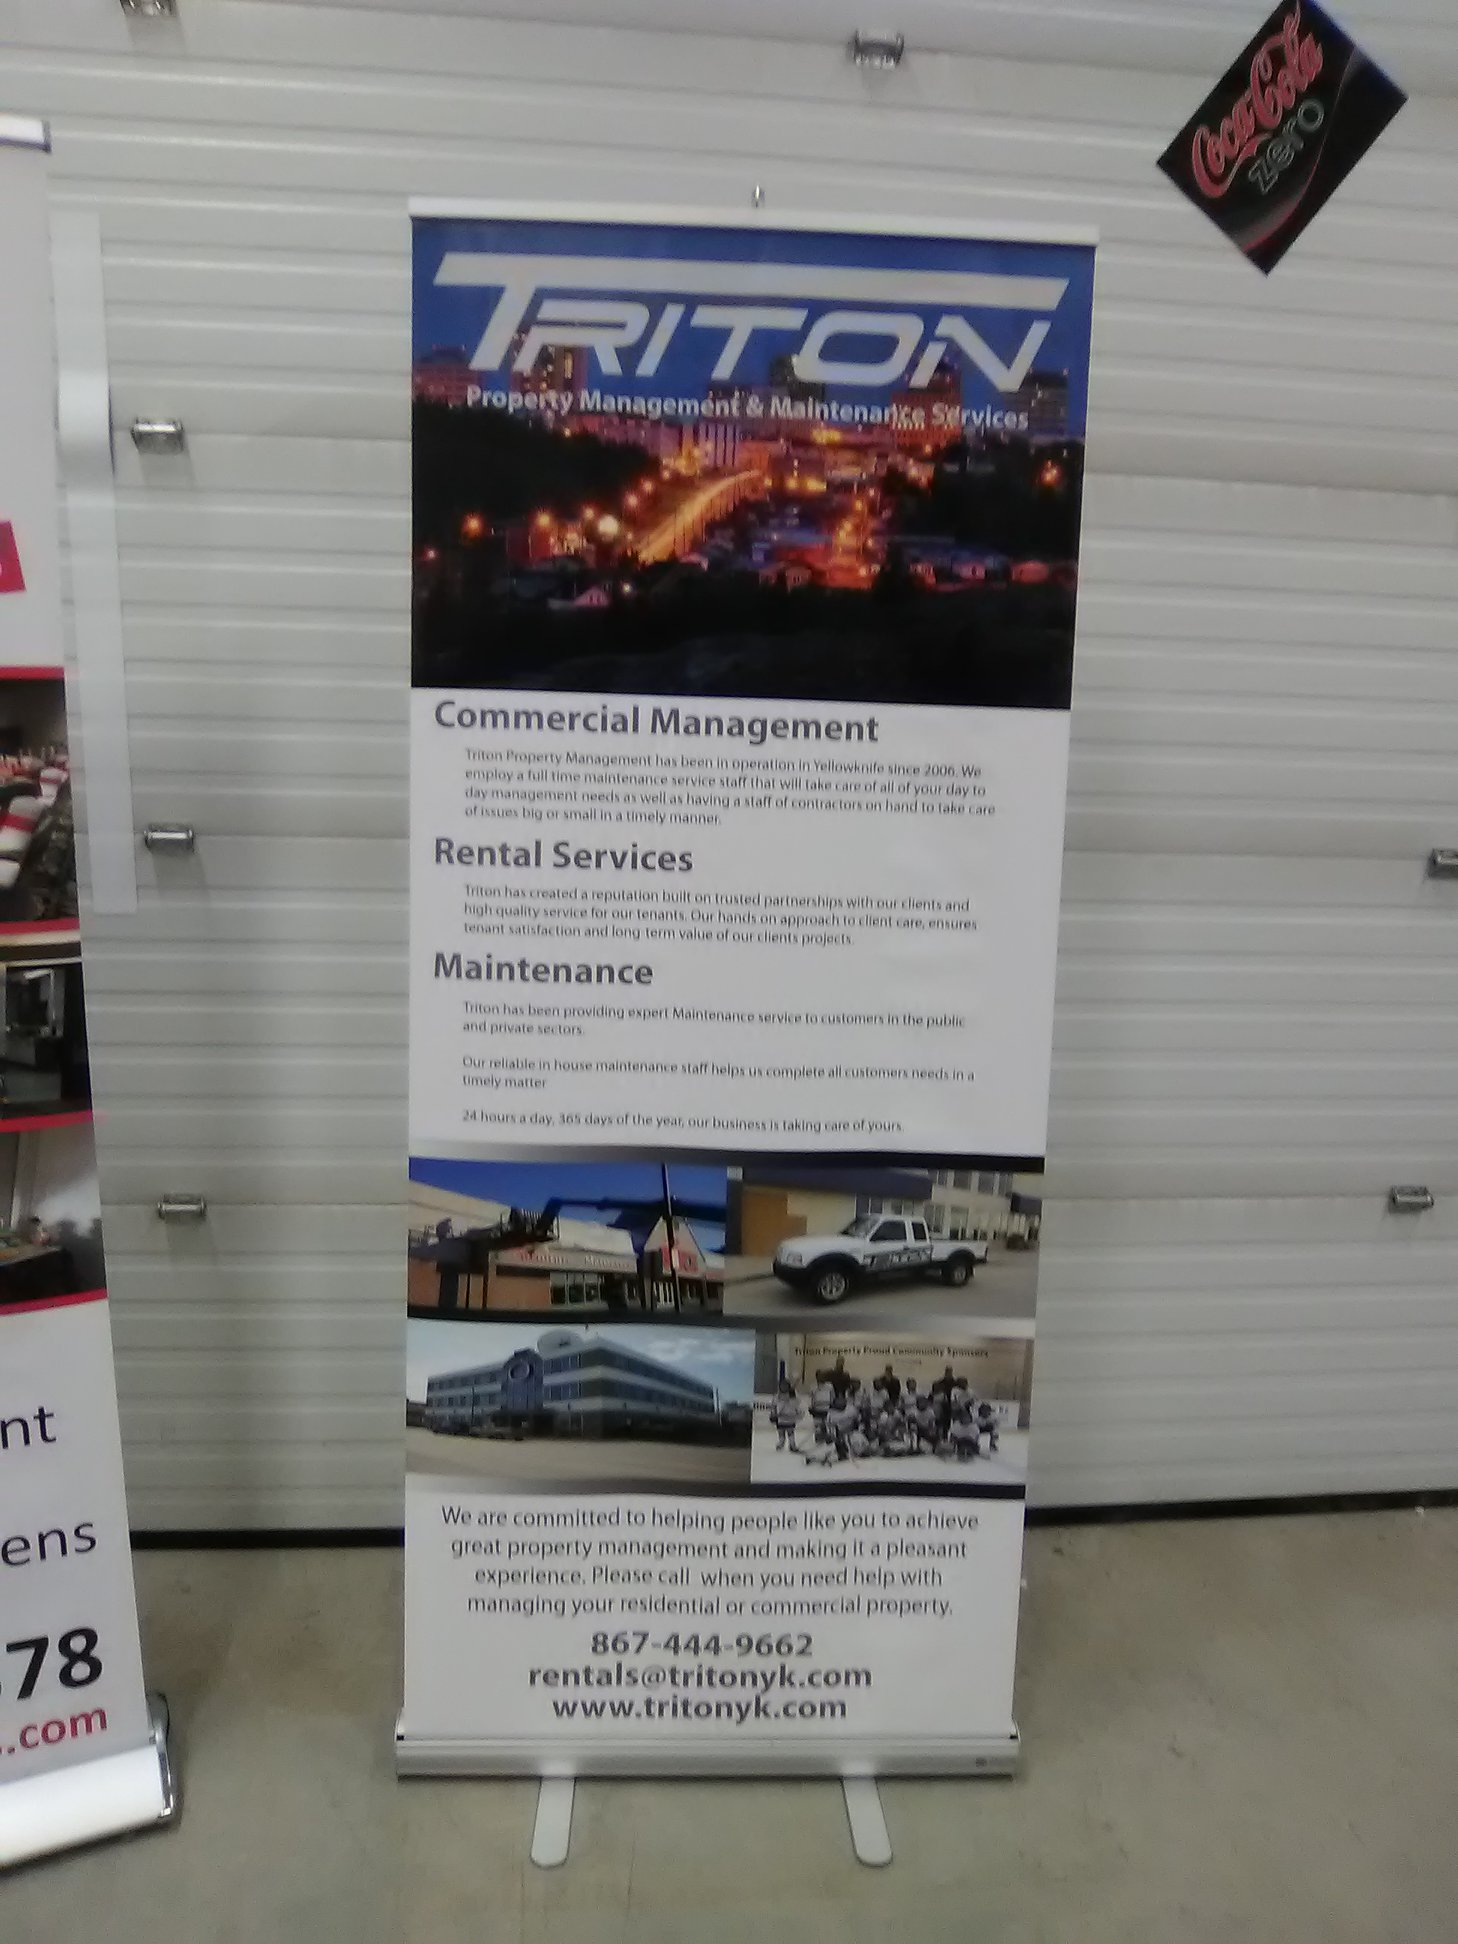 Corporate Signage for Triton Property Management & Maintenance Services